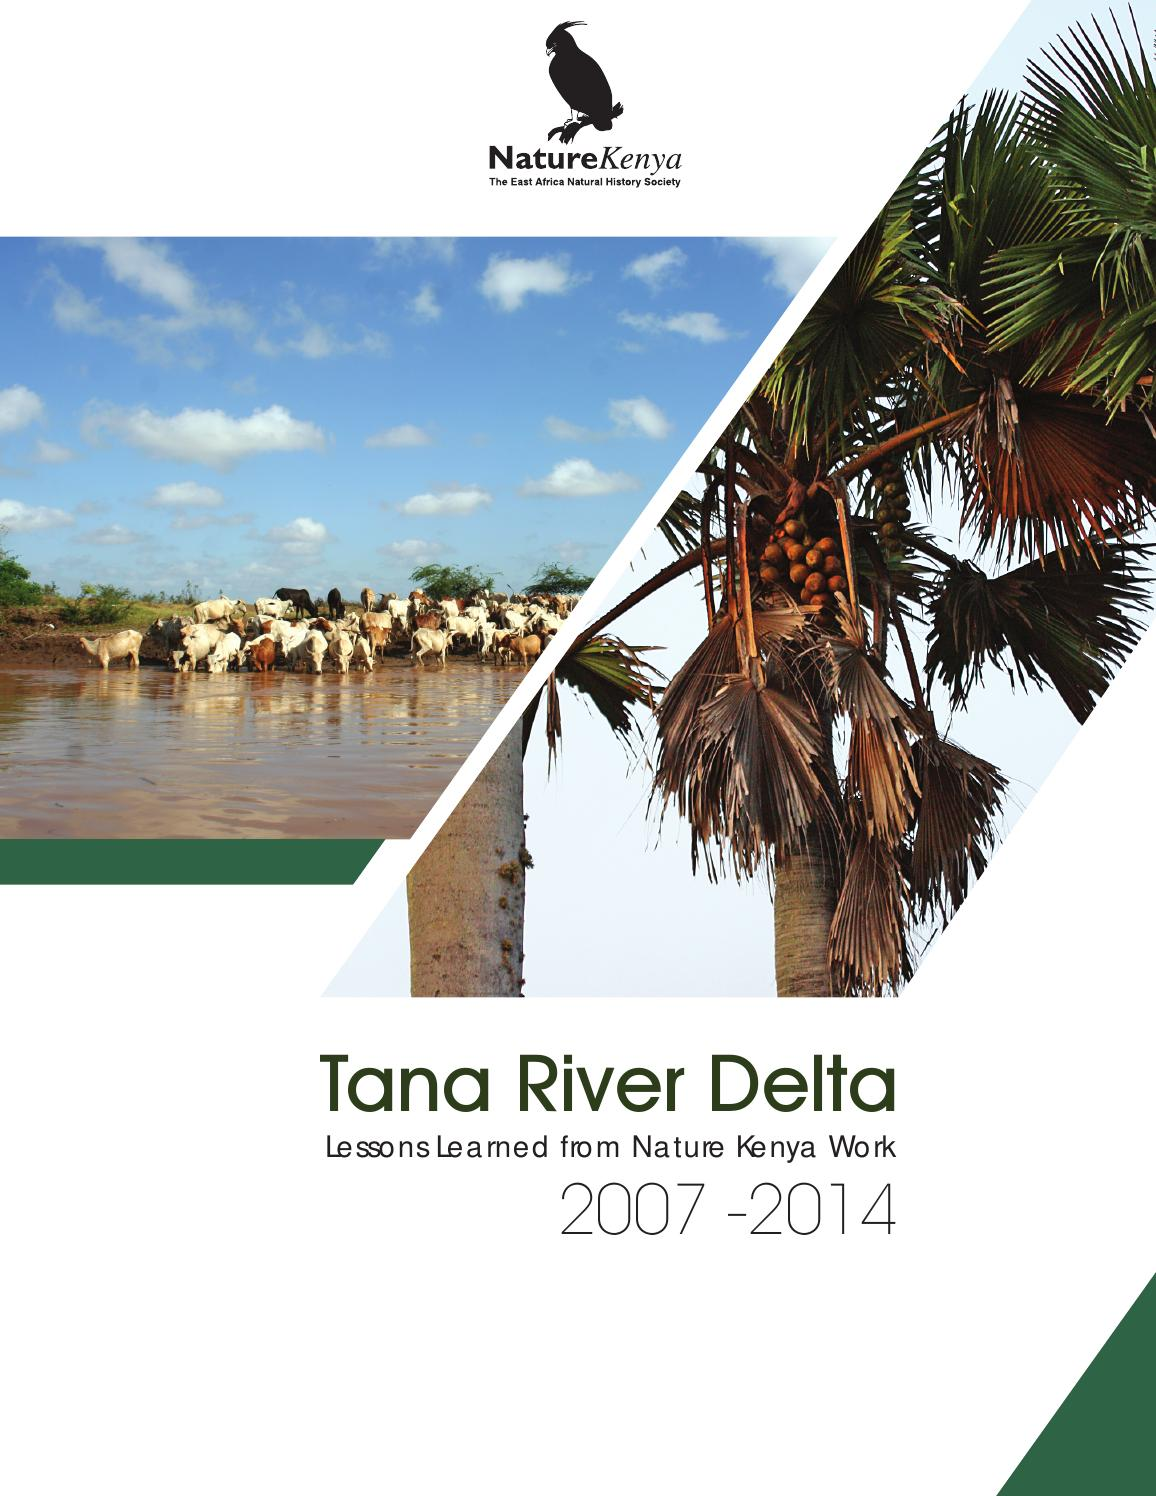 Tana River Delta: Lessons Learned from Nature Kenya Work